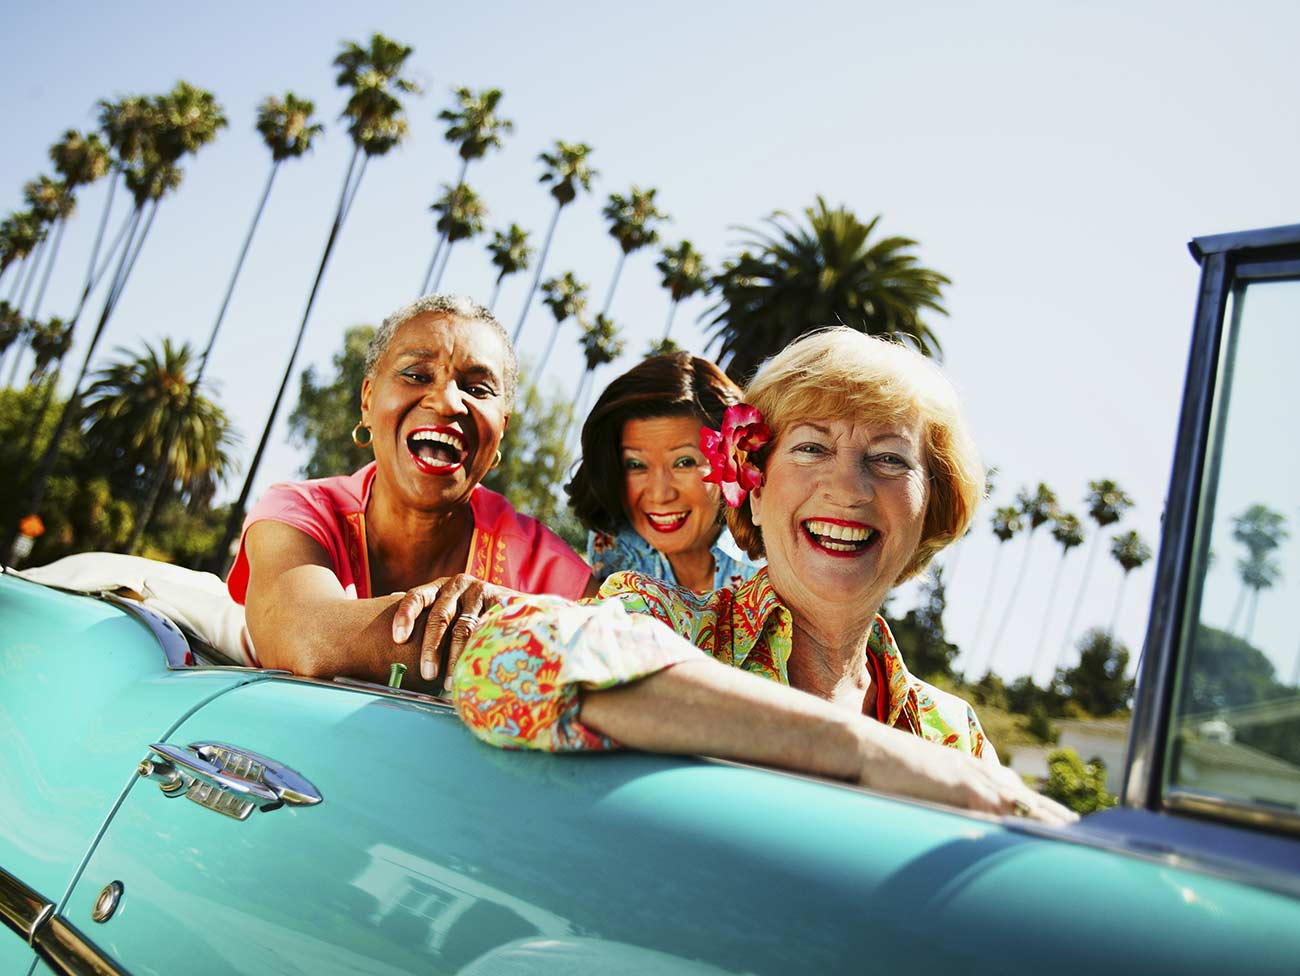 3 older women seated in a classic car with palm trees in the background